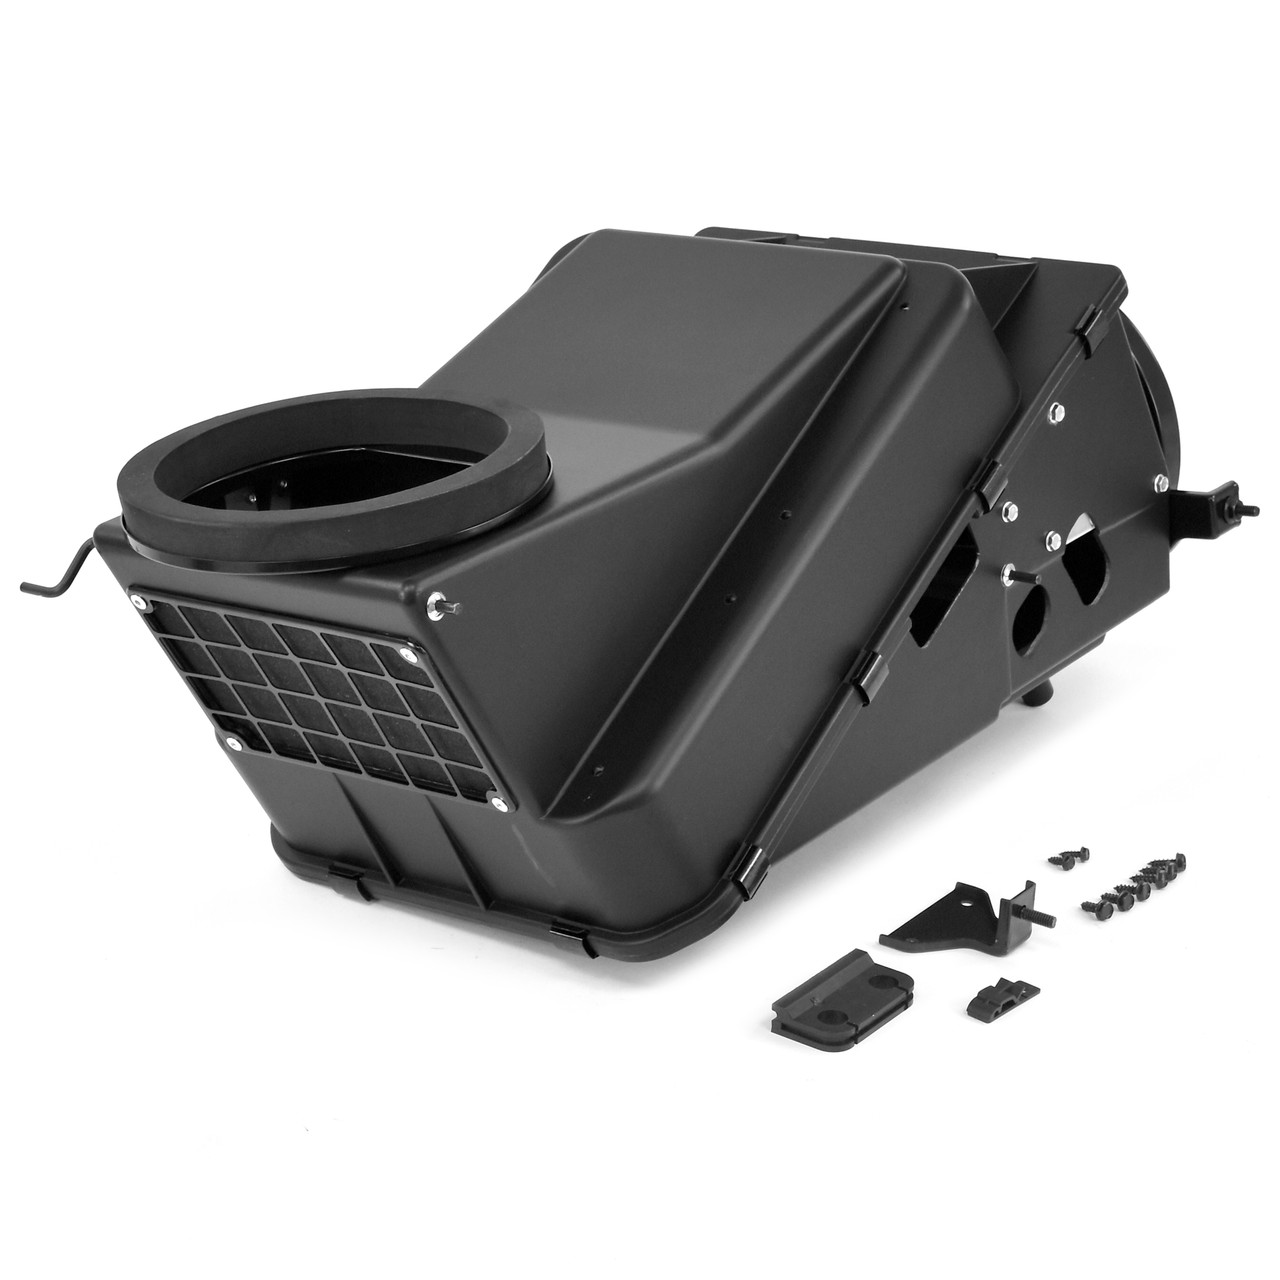 Heater Box With Air Conditioning [FM-EH027]